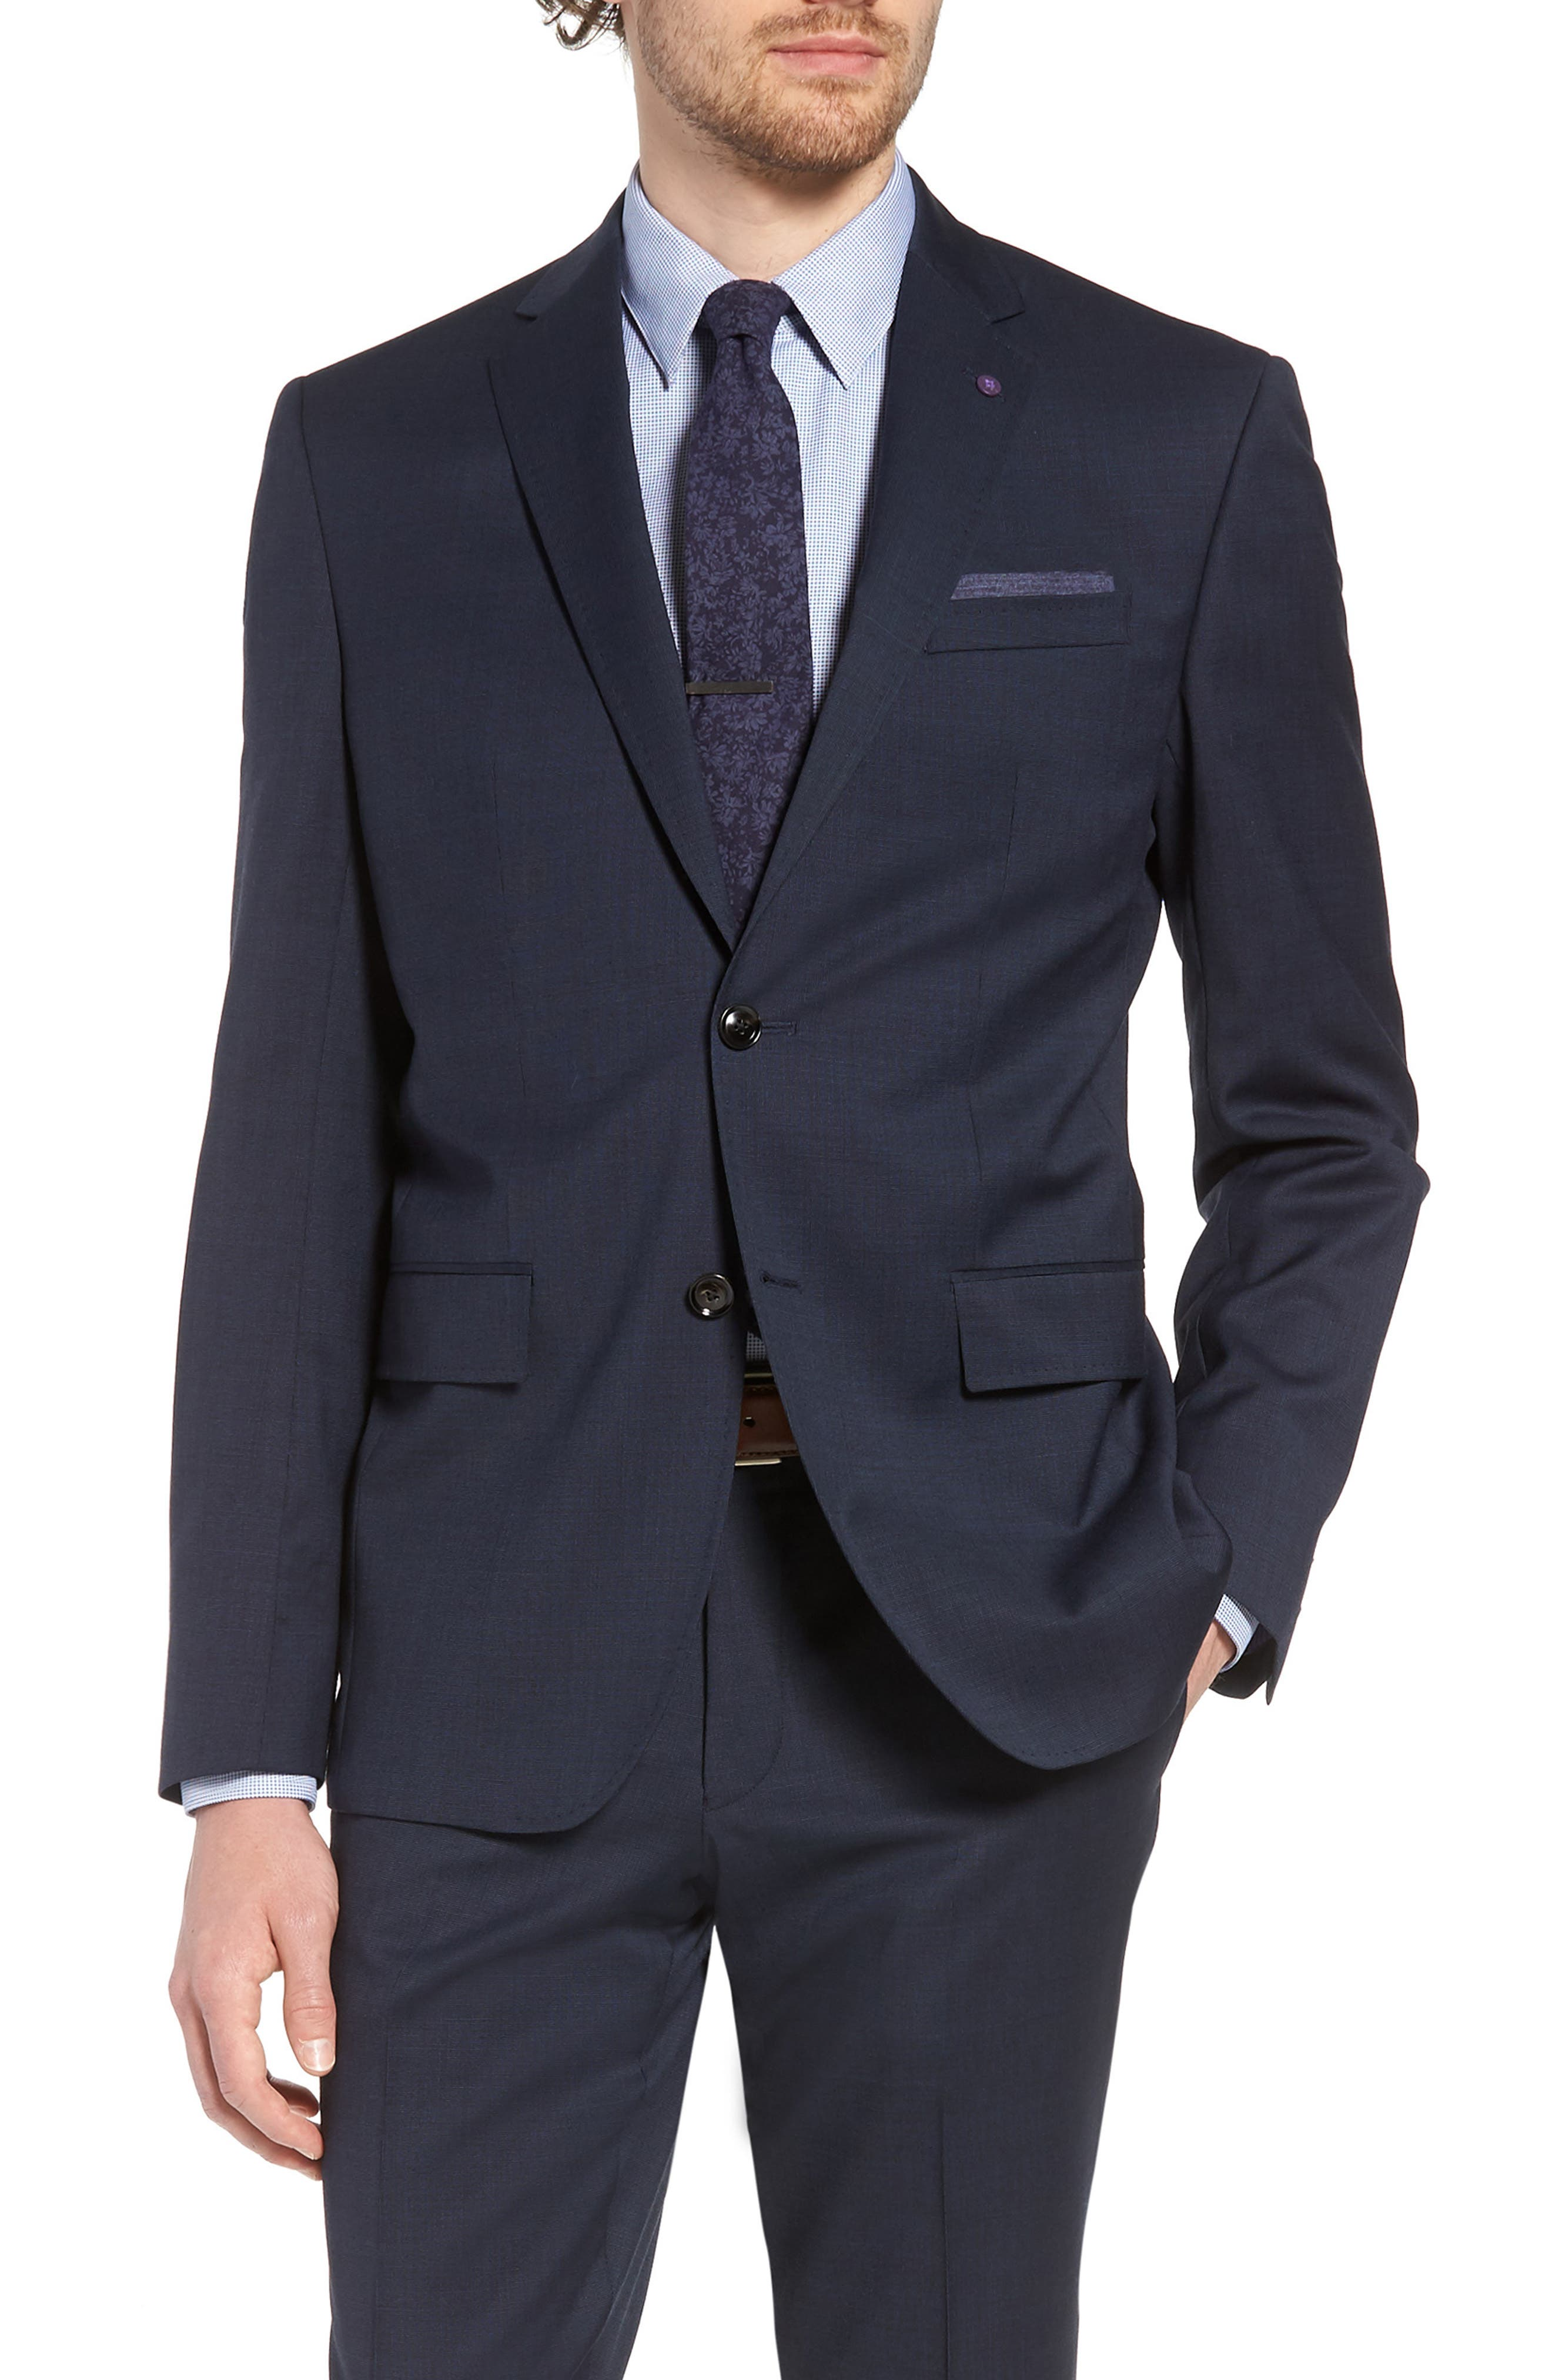 Jay Trim Fit Solid Wool Suit,                             Alternate thumbnail 5, color,                             Navy